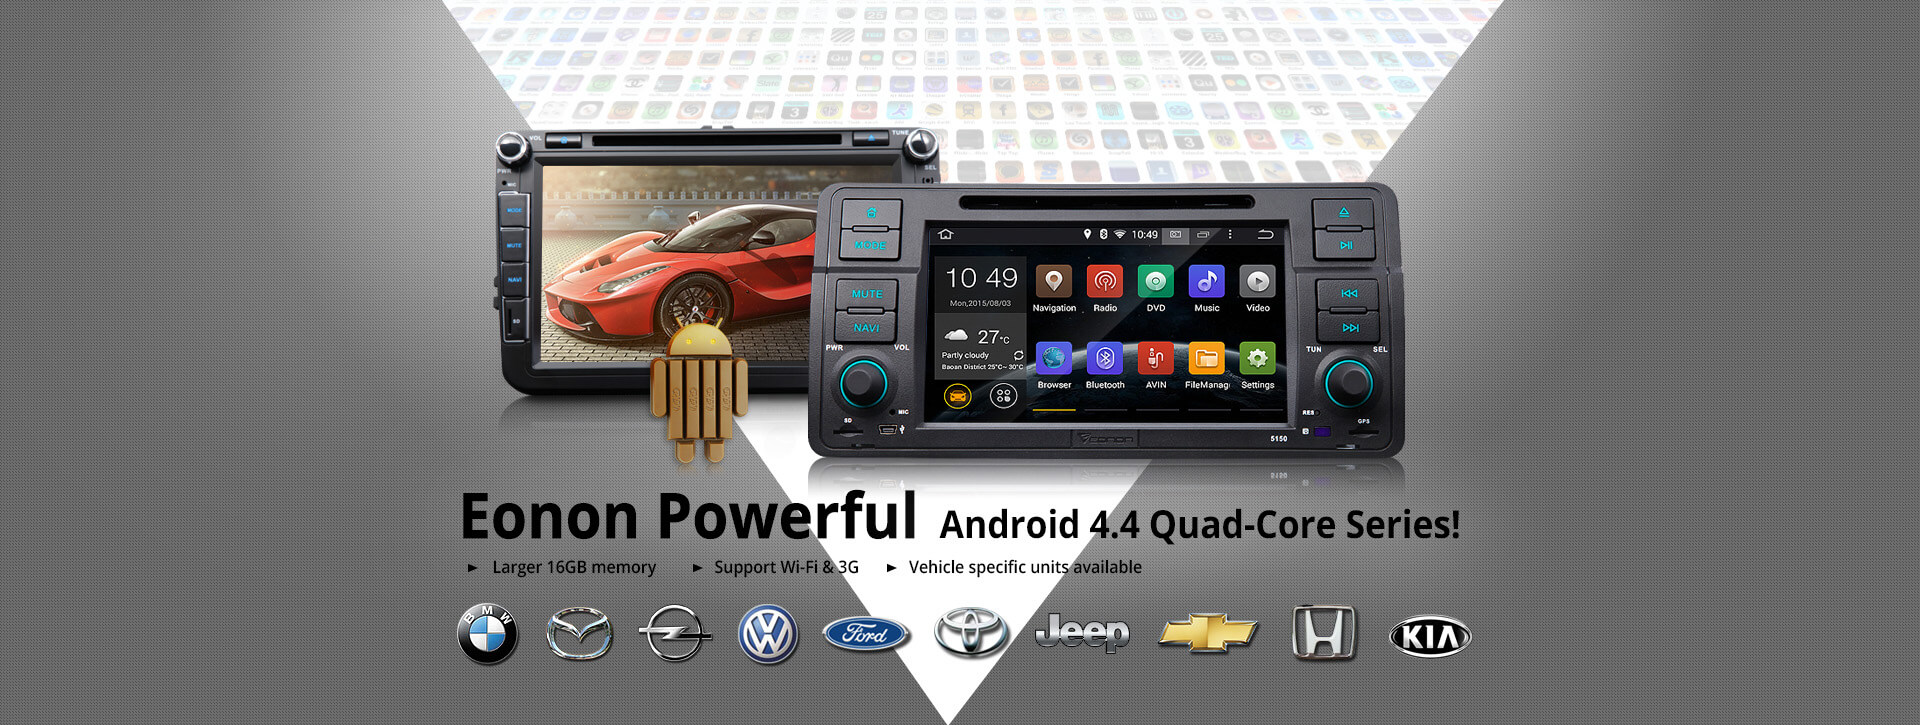 Eonon powerful android 4.4 Quad-Core Series,Eonon android car stereo,Vehicle specific units available